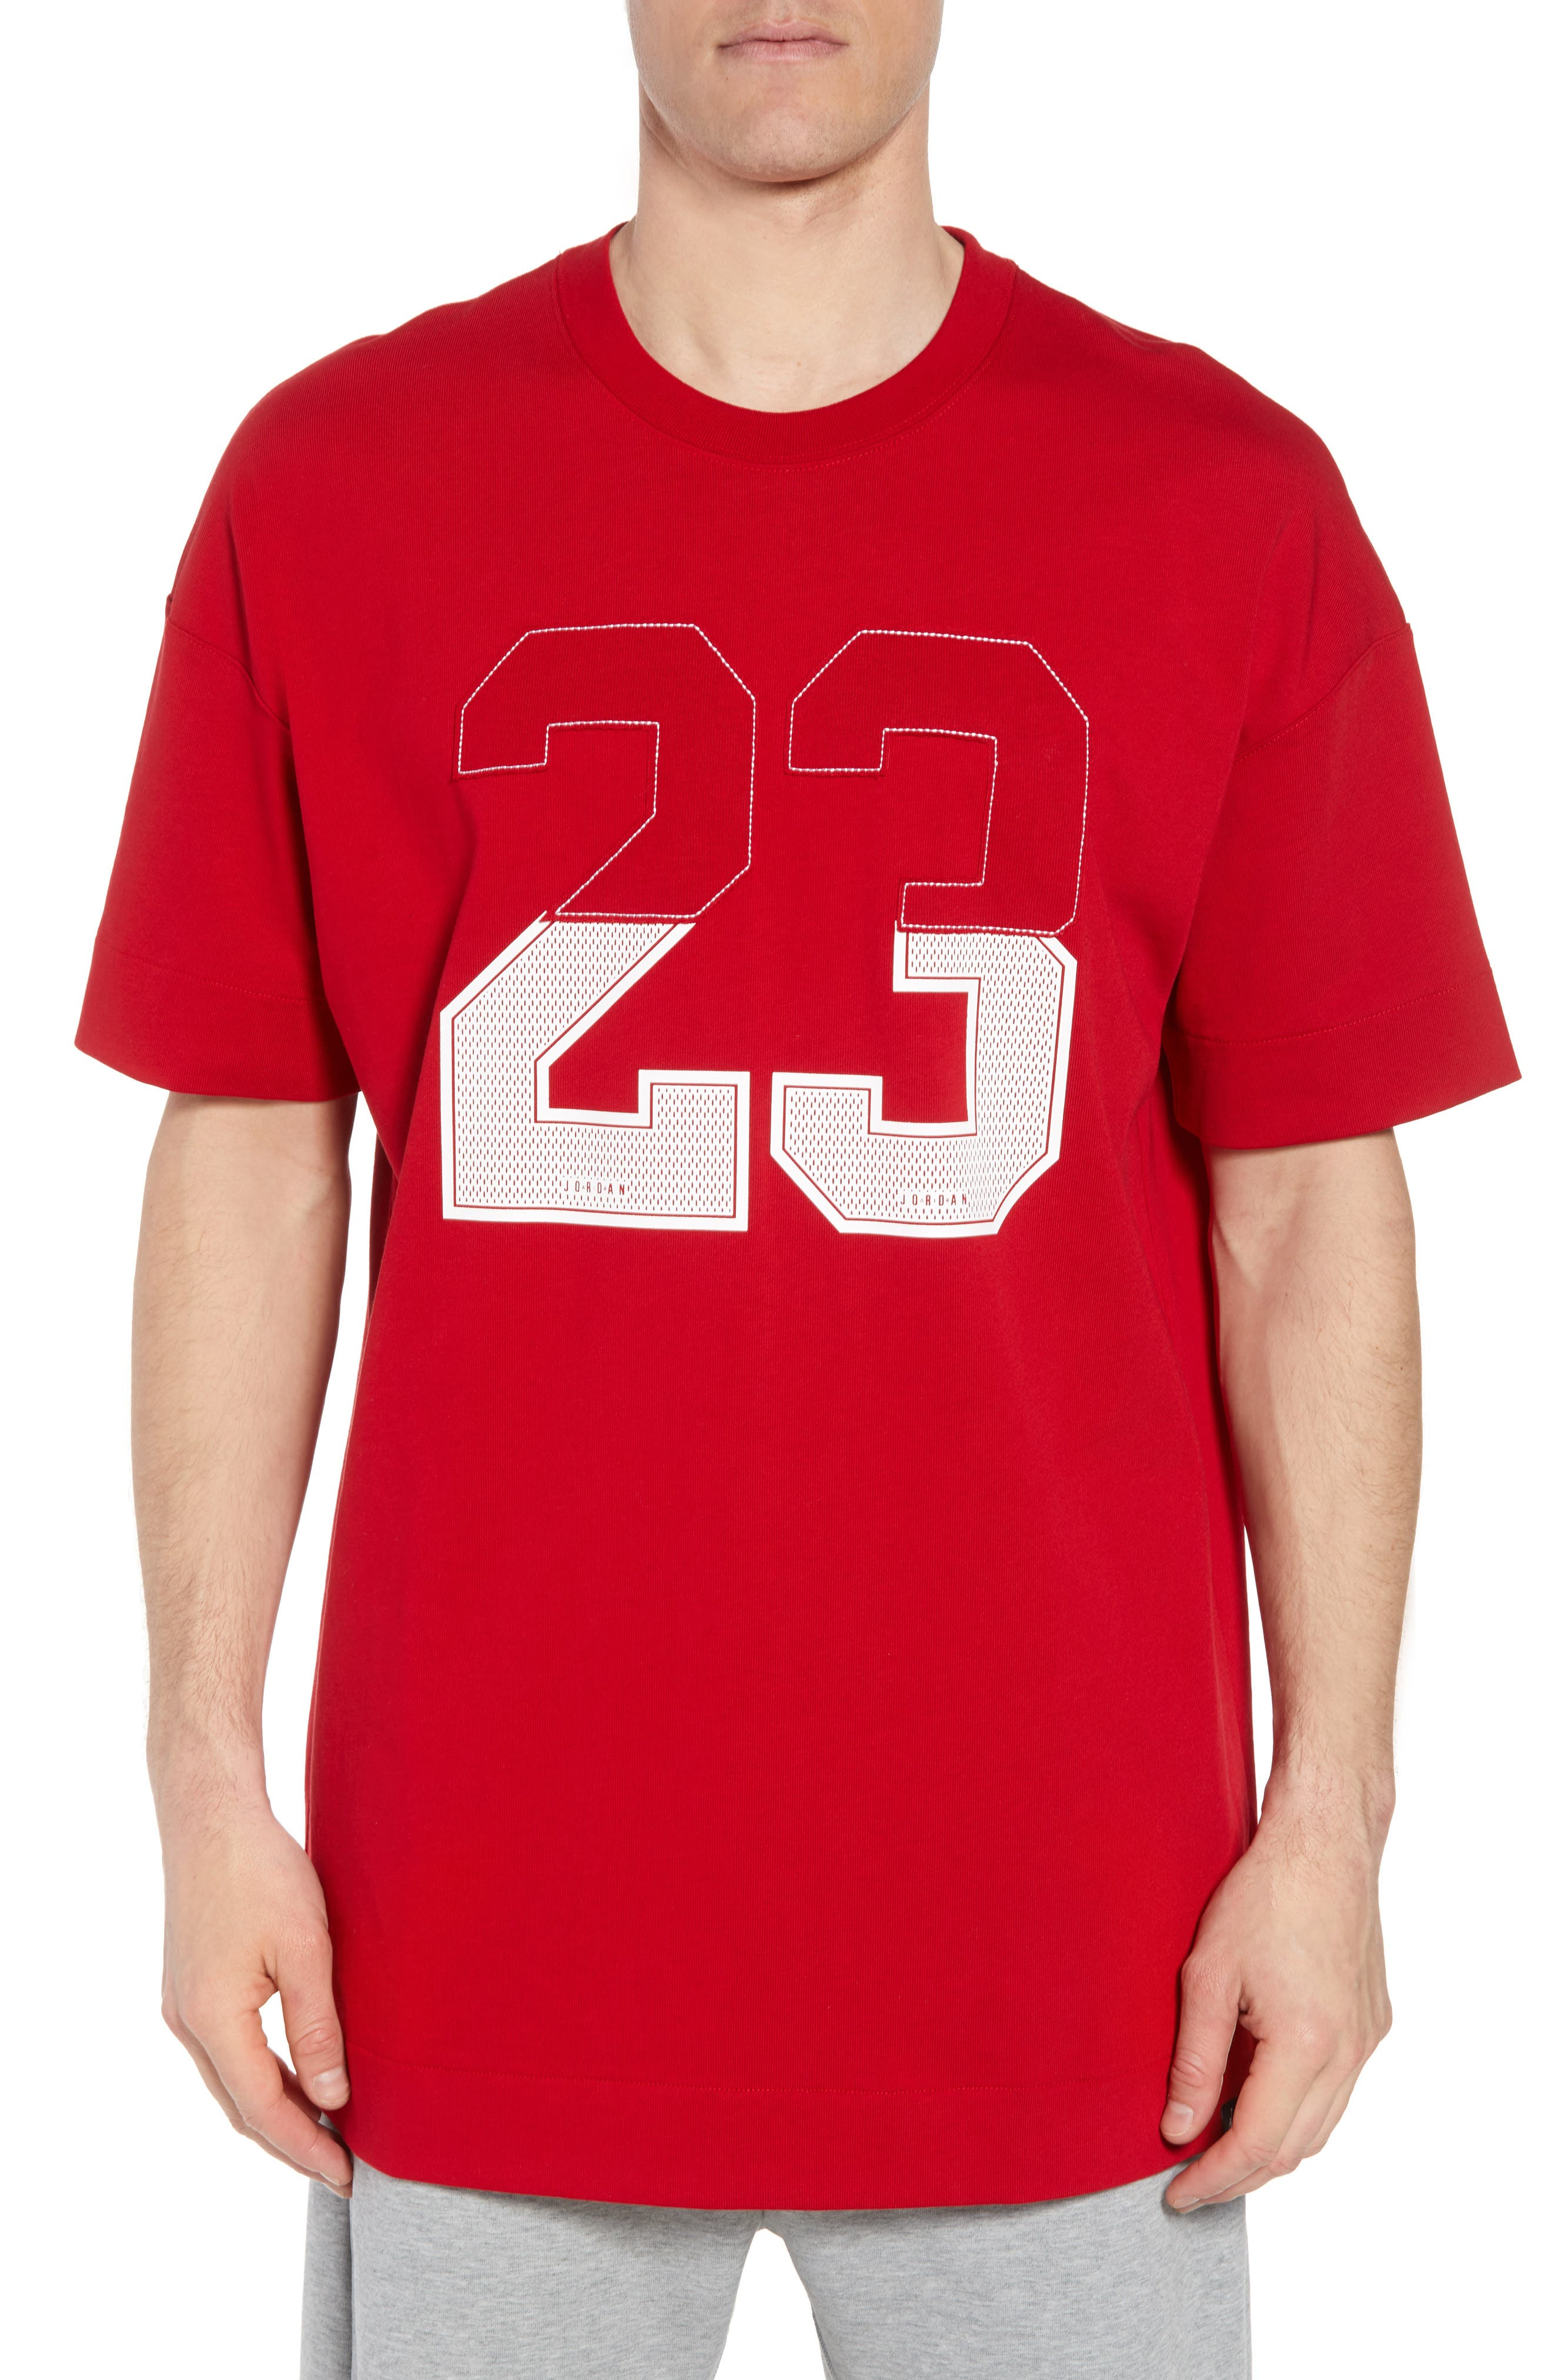 Nike Over3 Graphic T-Shirt, Red